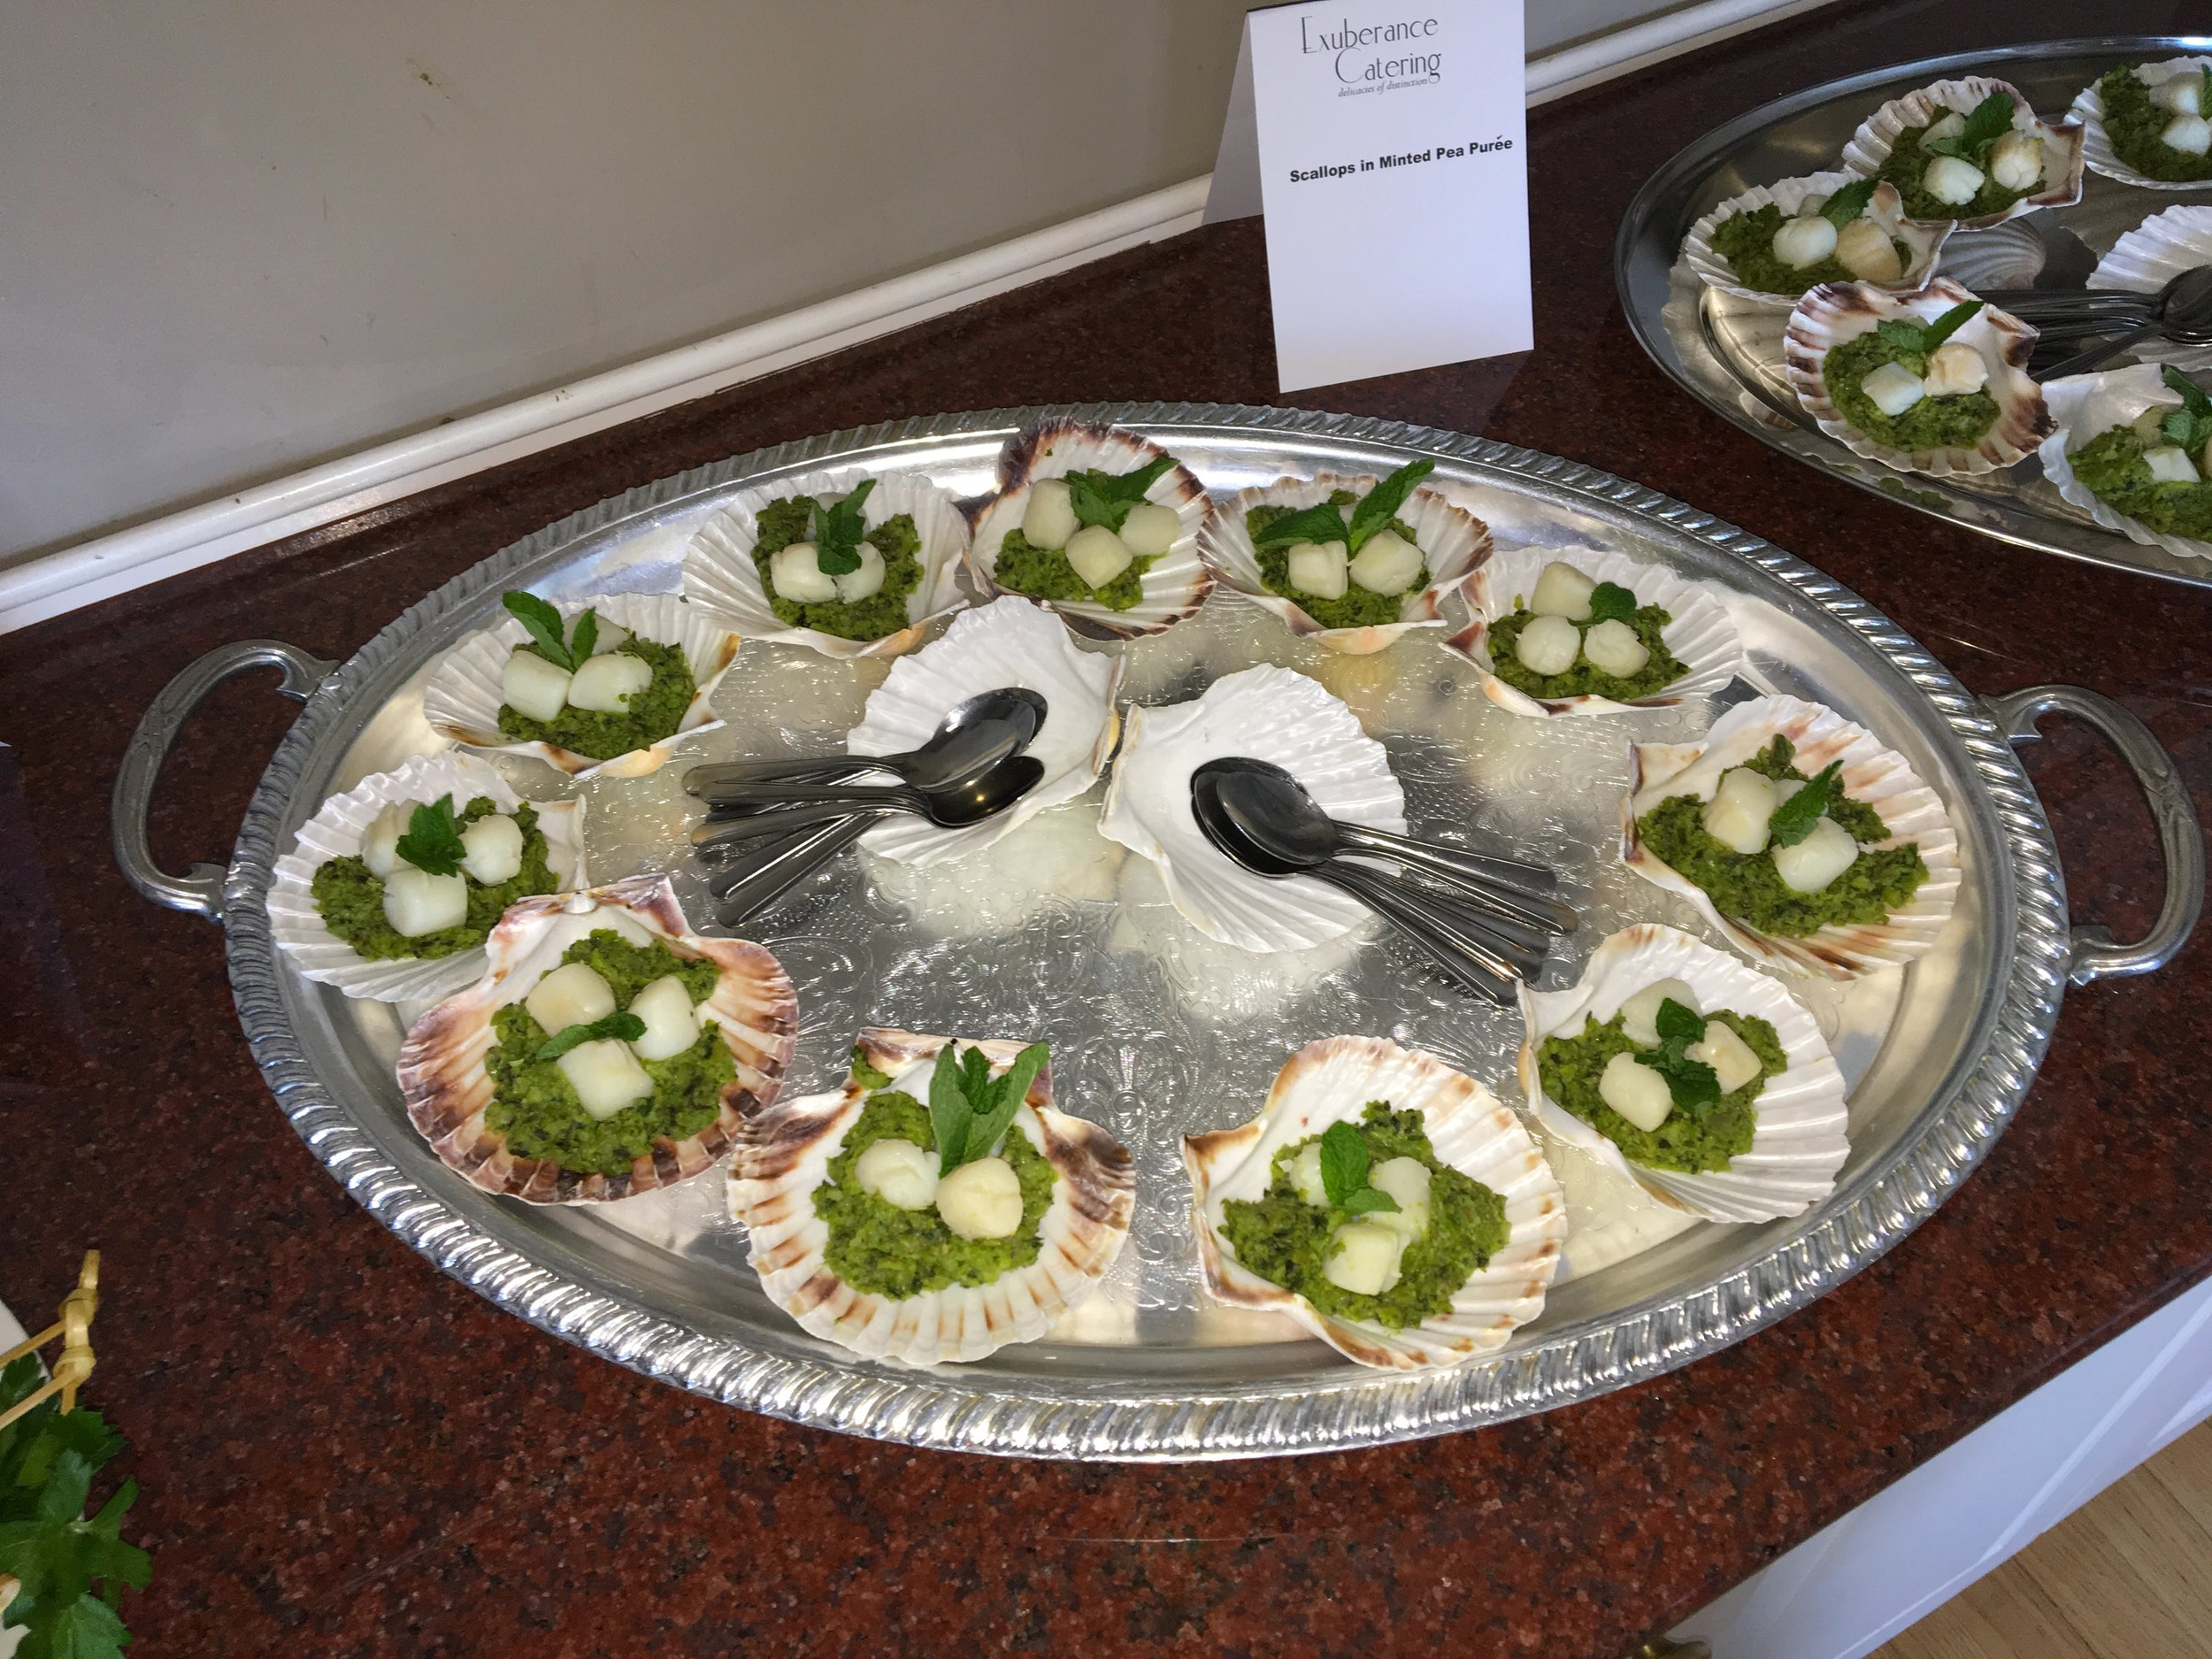 Scallops with minted pea puree in natural scallop shell